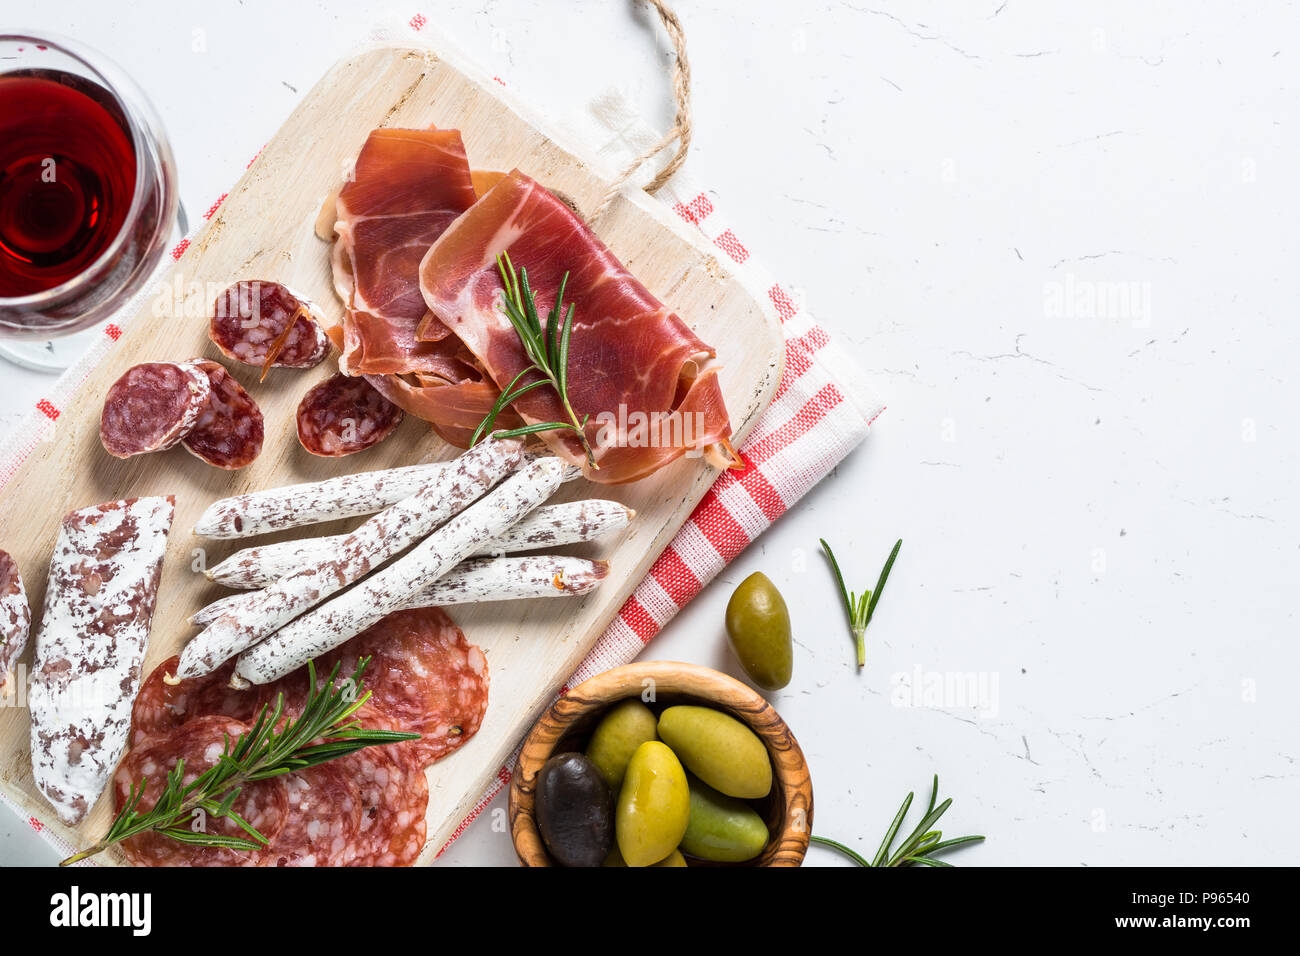 Traditional italian antipasto, sliced meat set with wine and olives on white table. Top view, copy space. Stock Photo